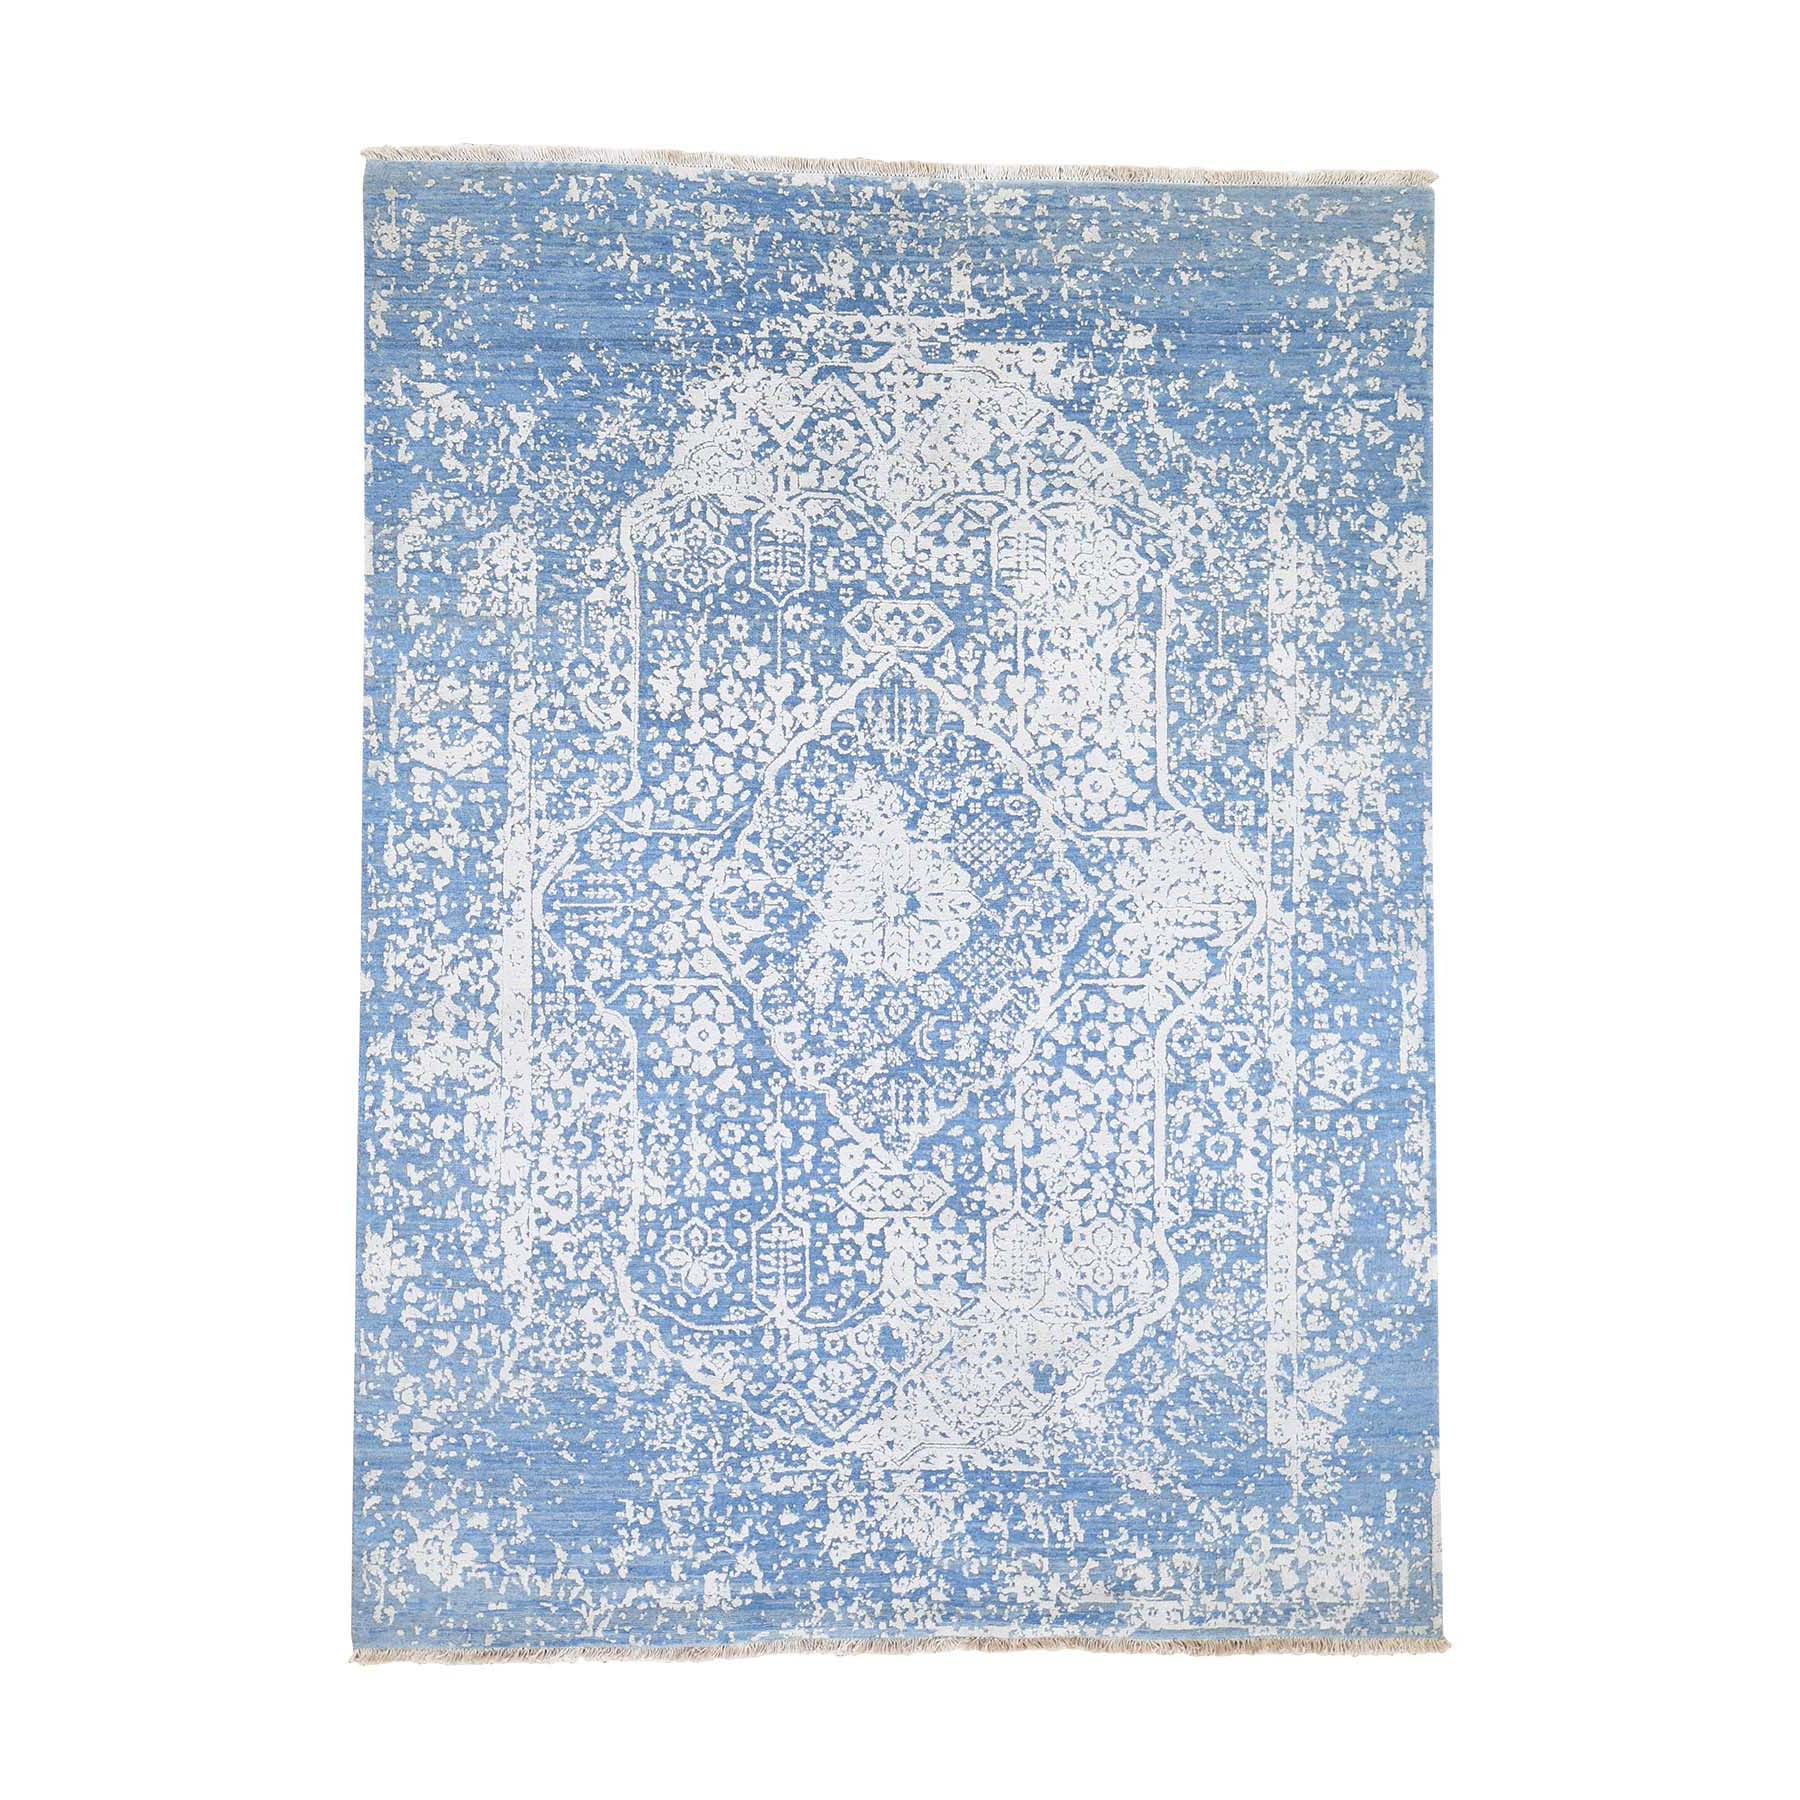 "5'1""x7' Hand-Knotted Broken Persian Design Denim Blue Wool and Pure Silk Oriental Rug"